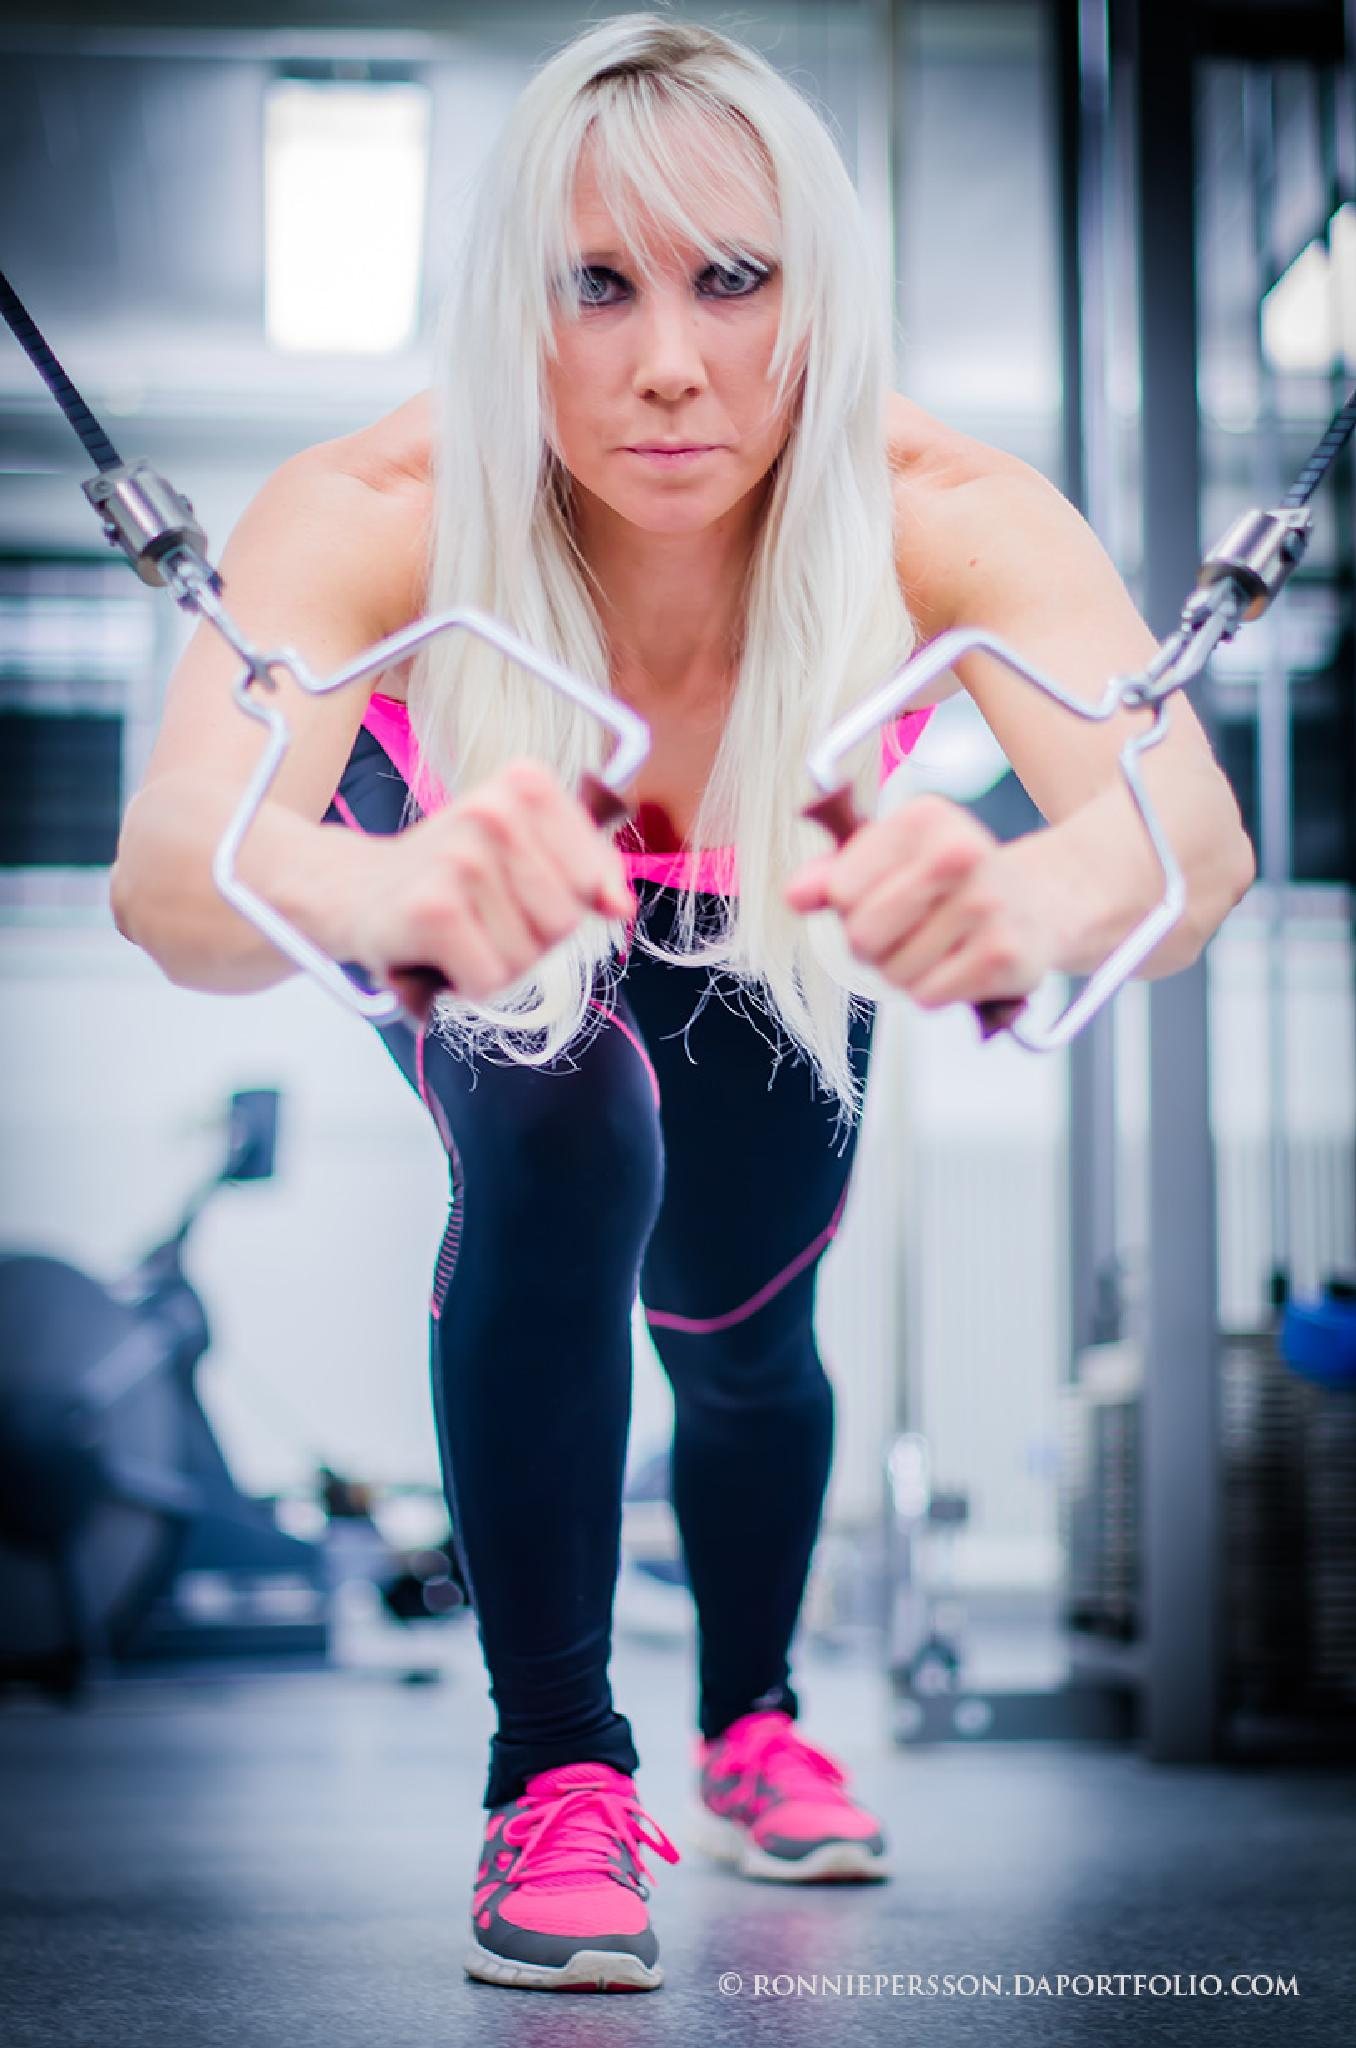 Fitness by RonniePersson